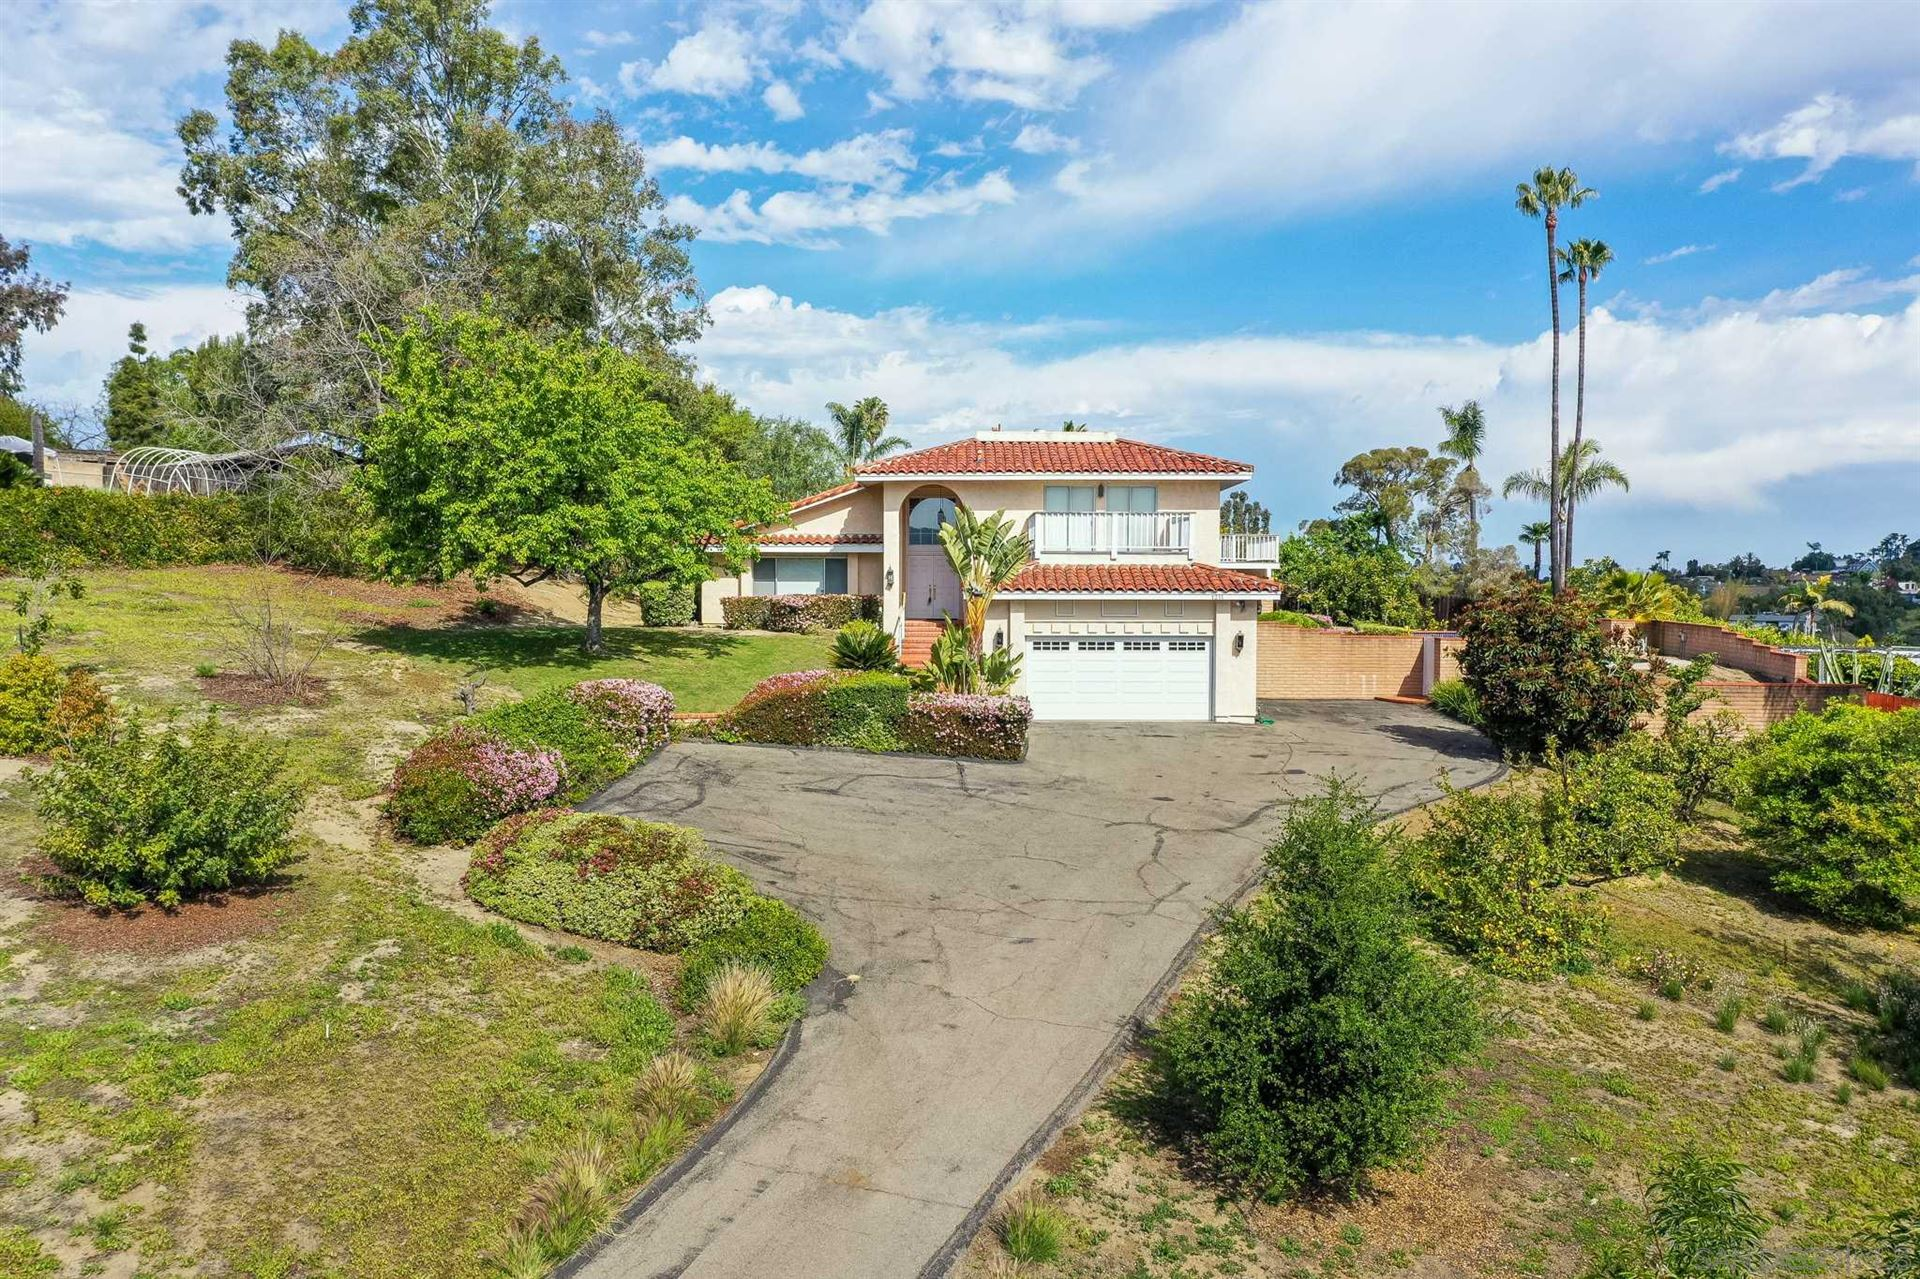 Photo of 1211 Clarence Dr, Vista, CA 92084 (MLS # 210009014)